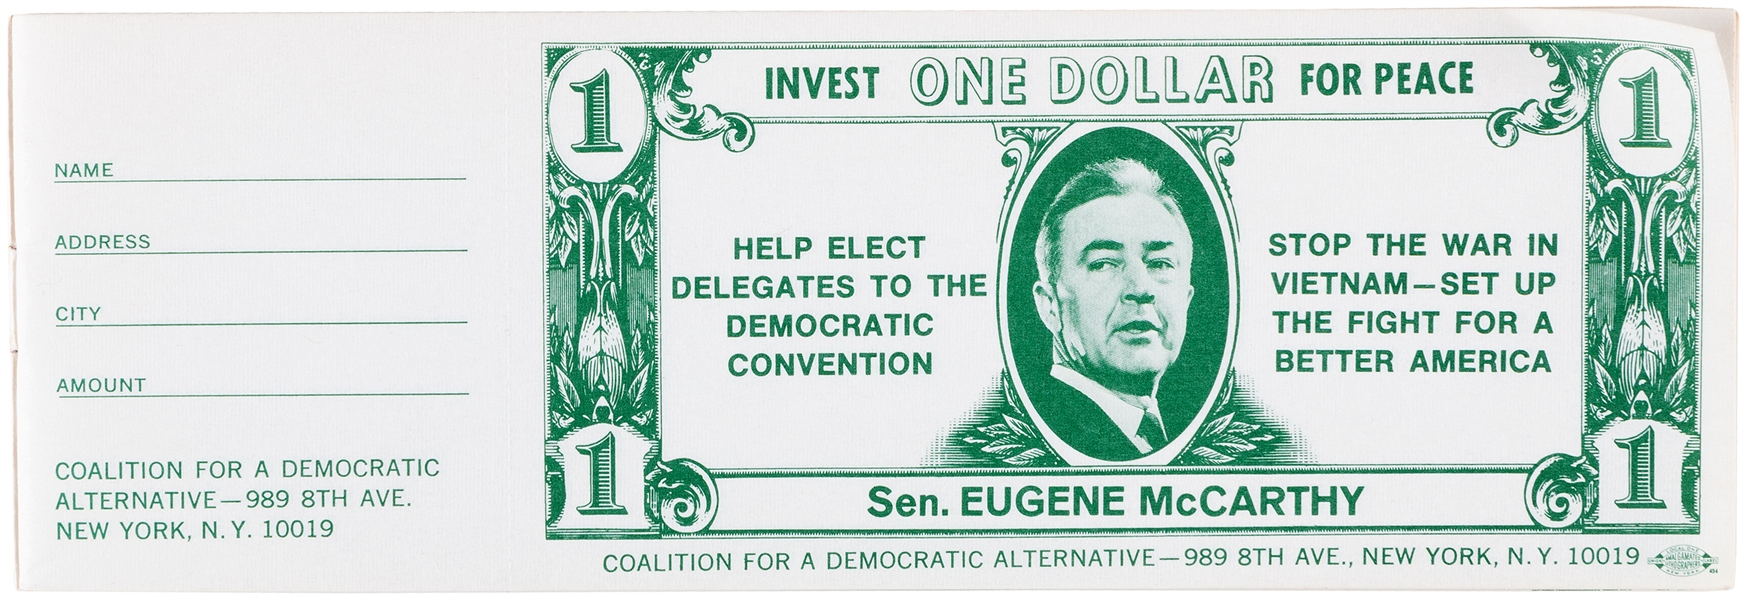 "McCARTHY 1968 ""ONE DOLLAR FOR PEACE"" FULL BOOKLET OF 20 DONATION CERTIFICATES."